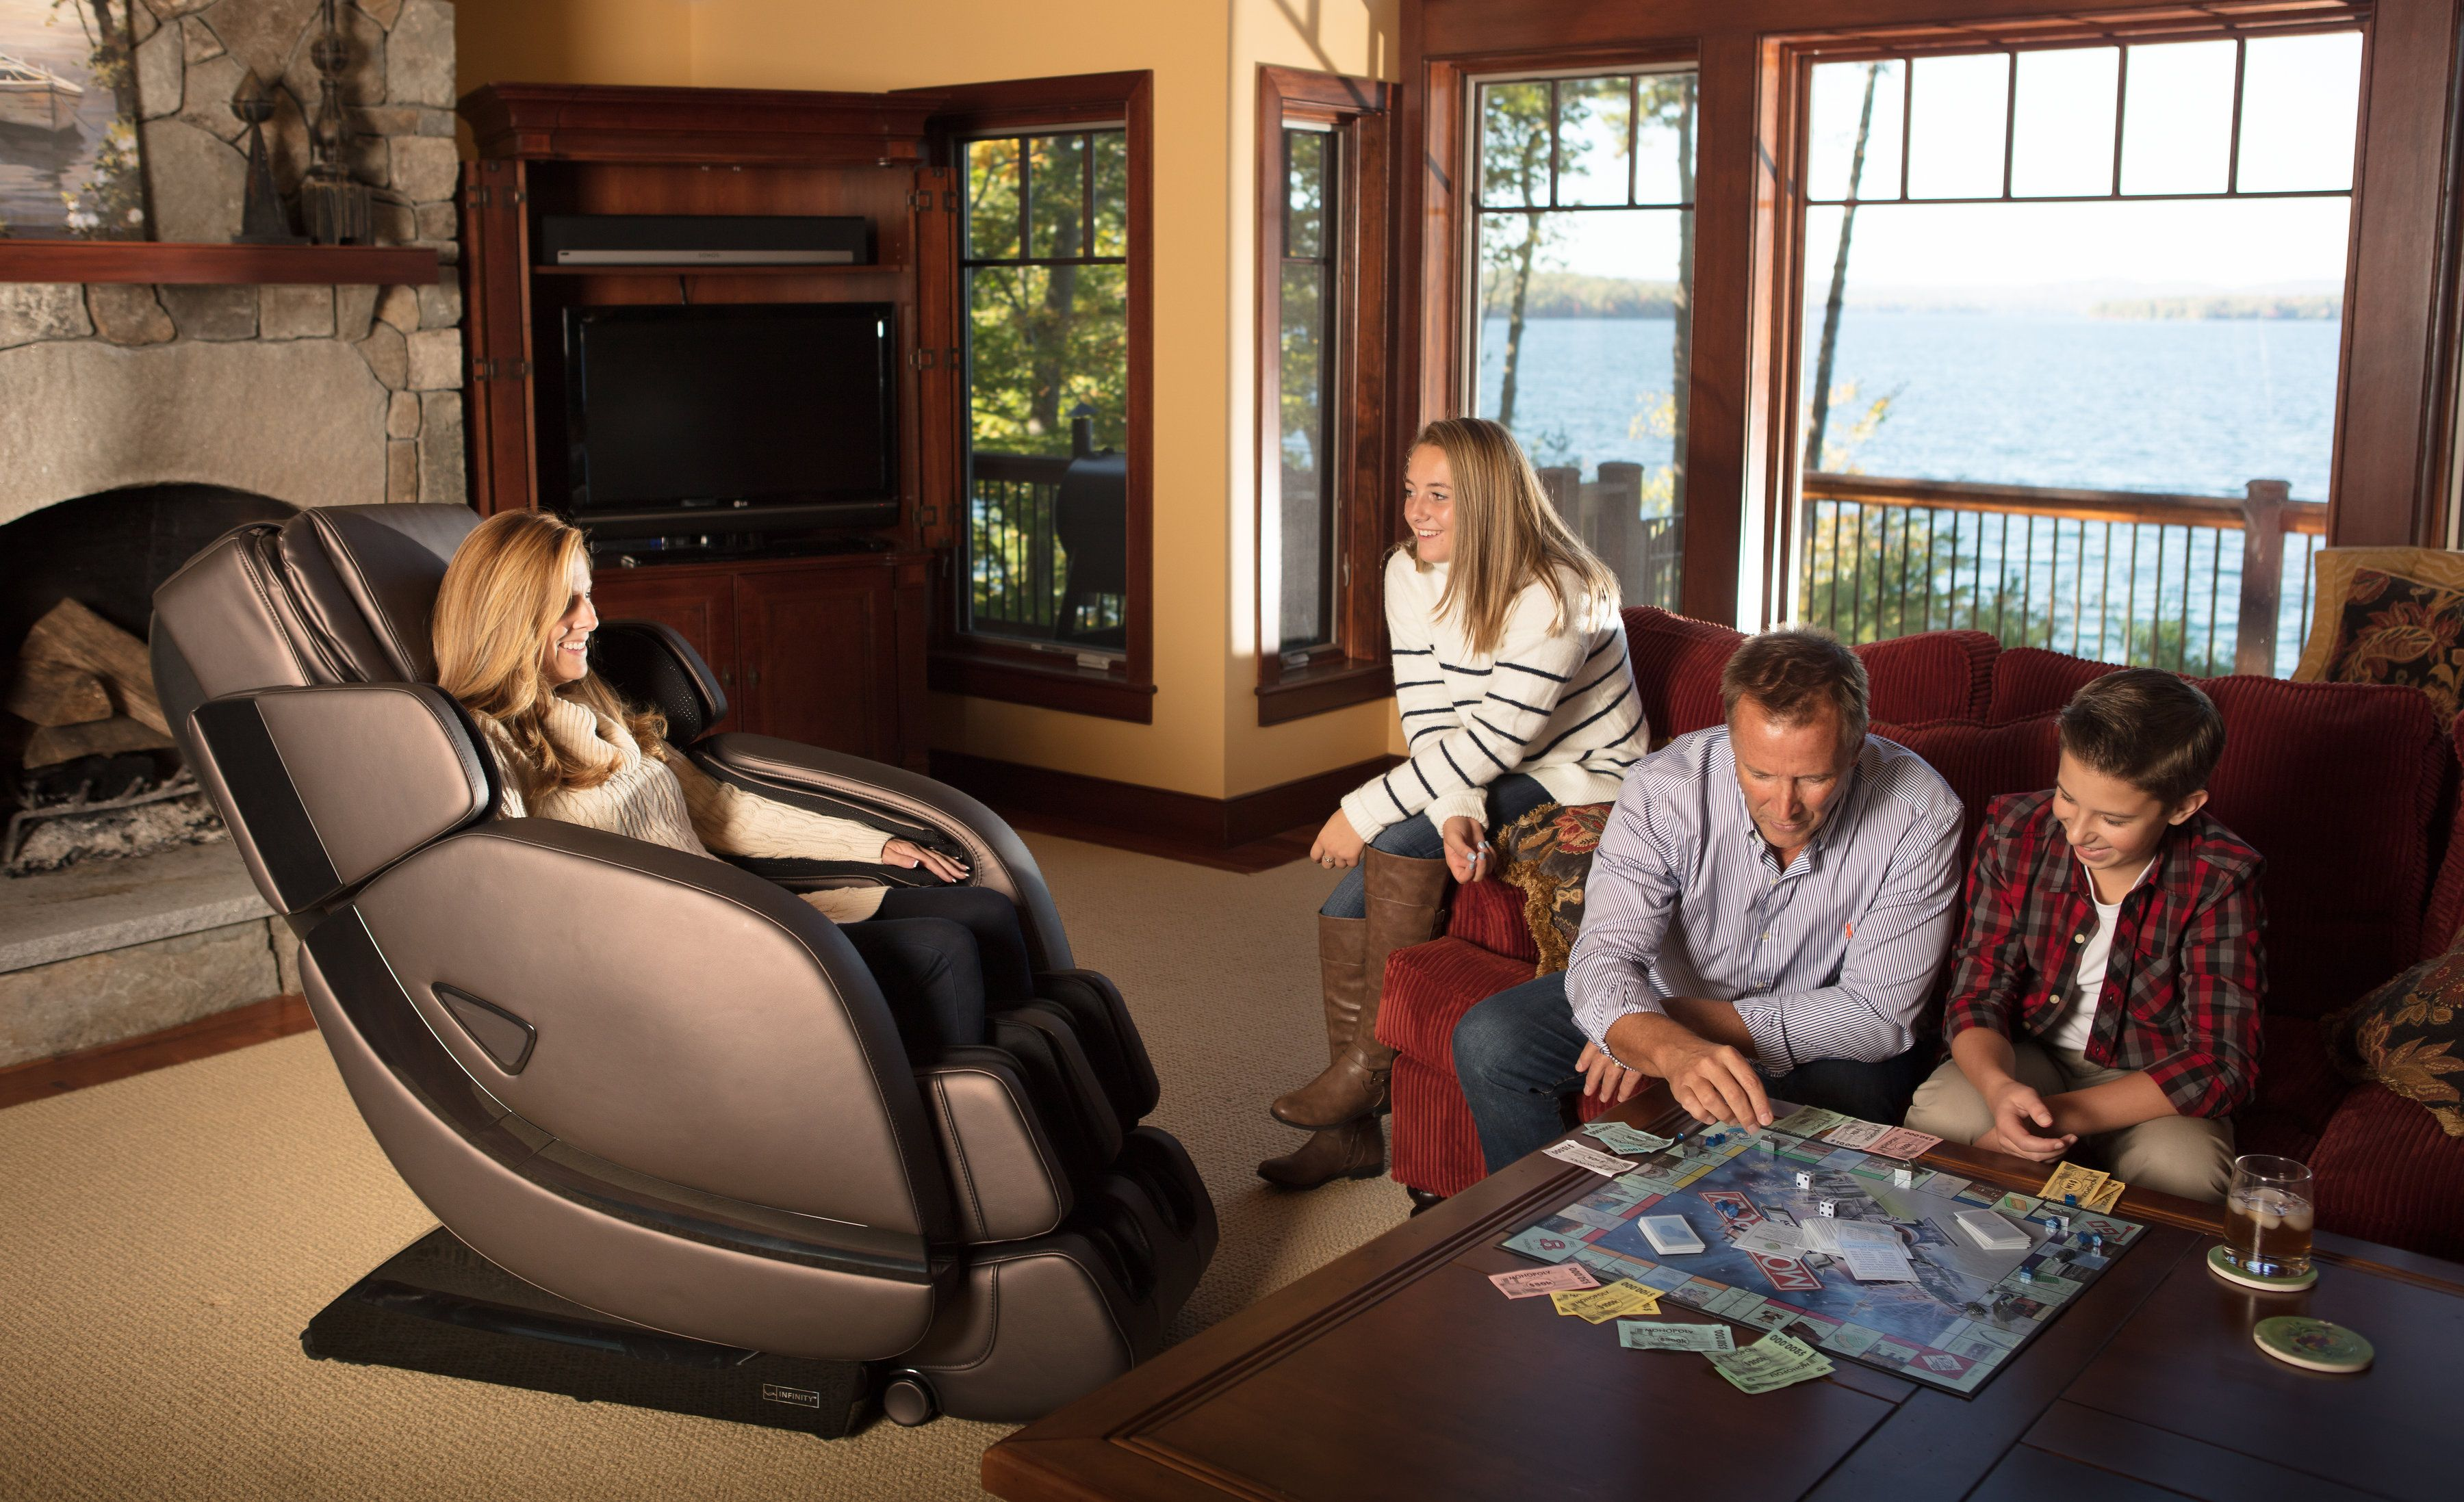 infinity massage chair company in 2020 Massage chair